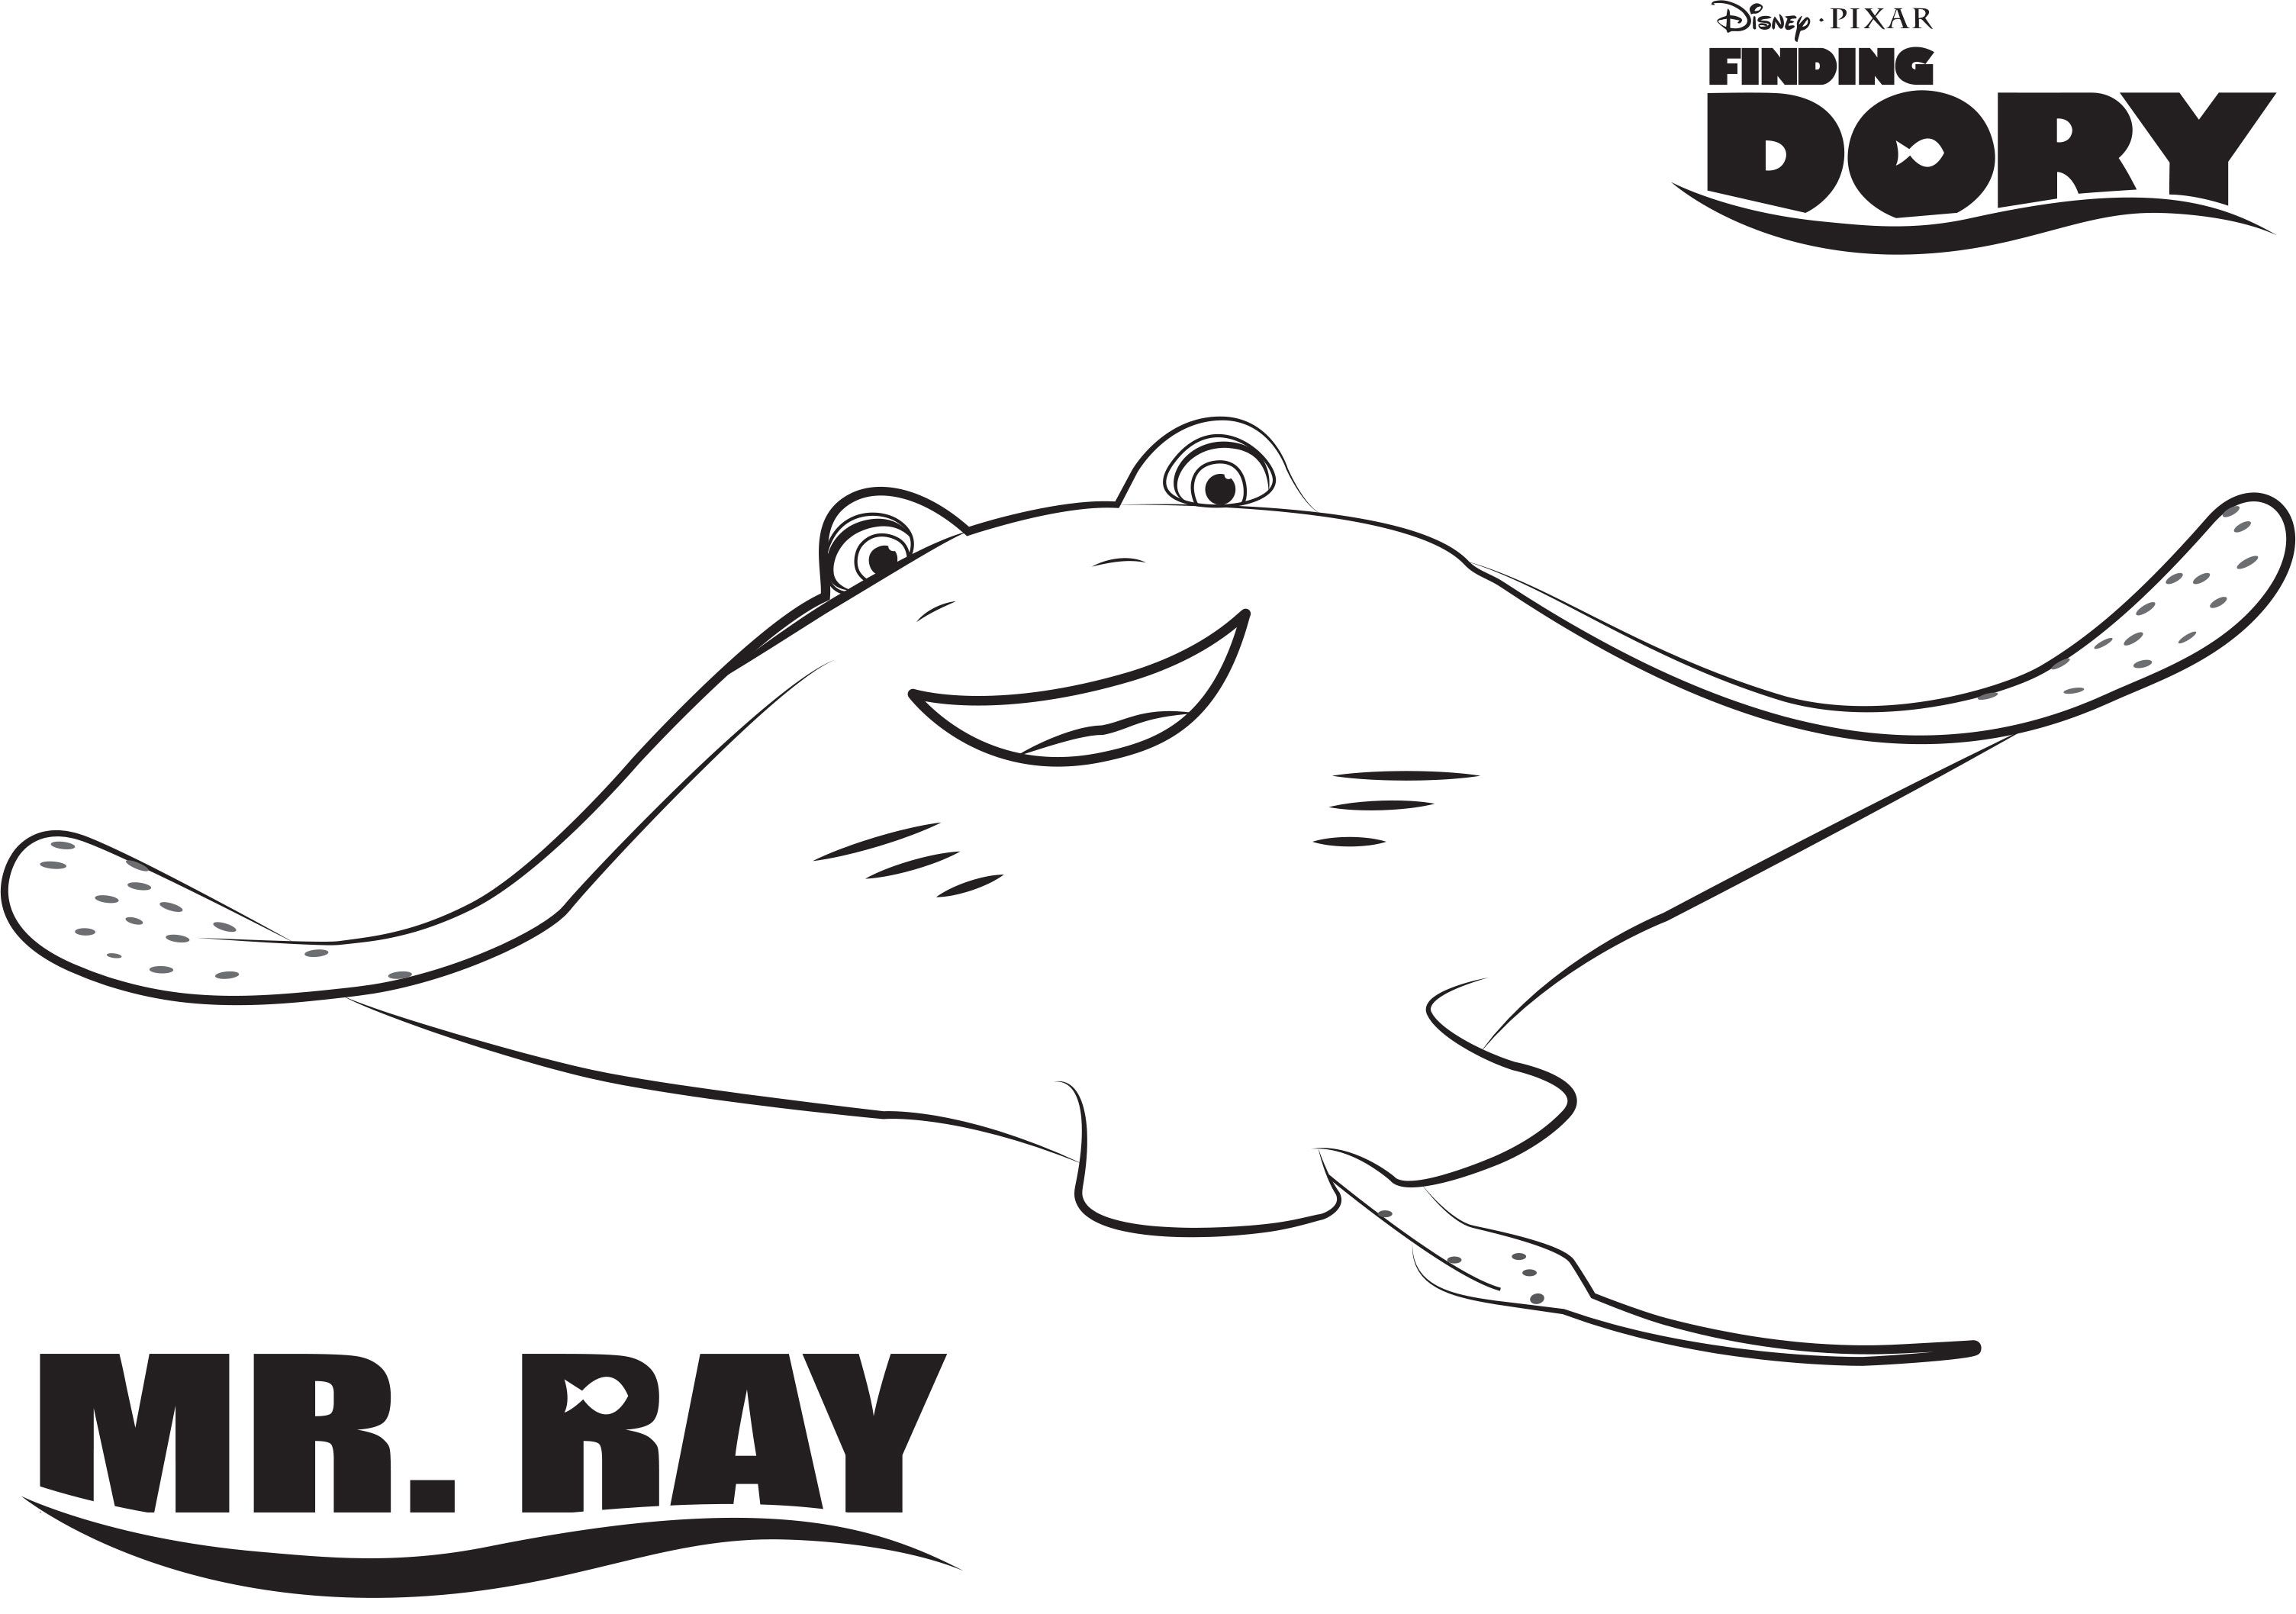 Disney S Finding Dory Mr Ray Coloring Page